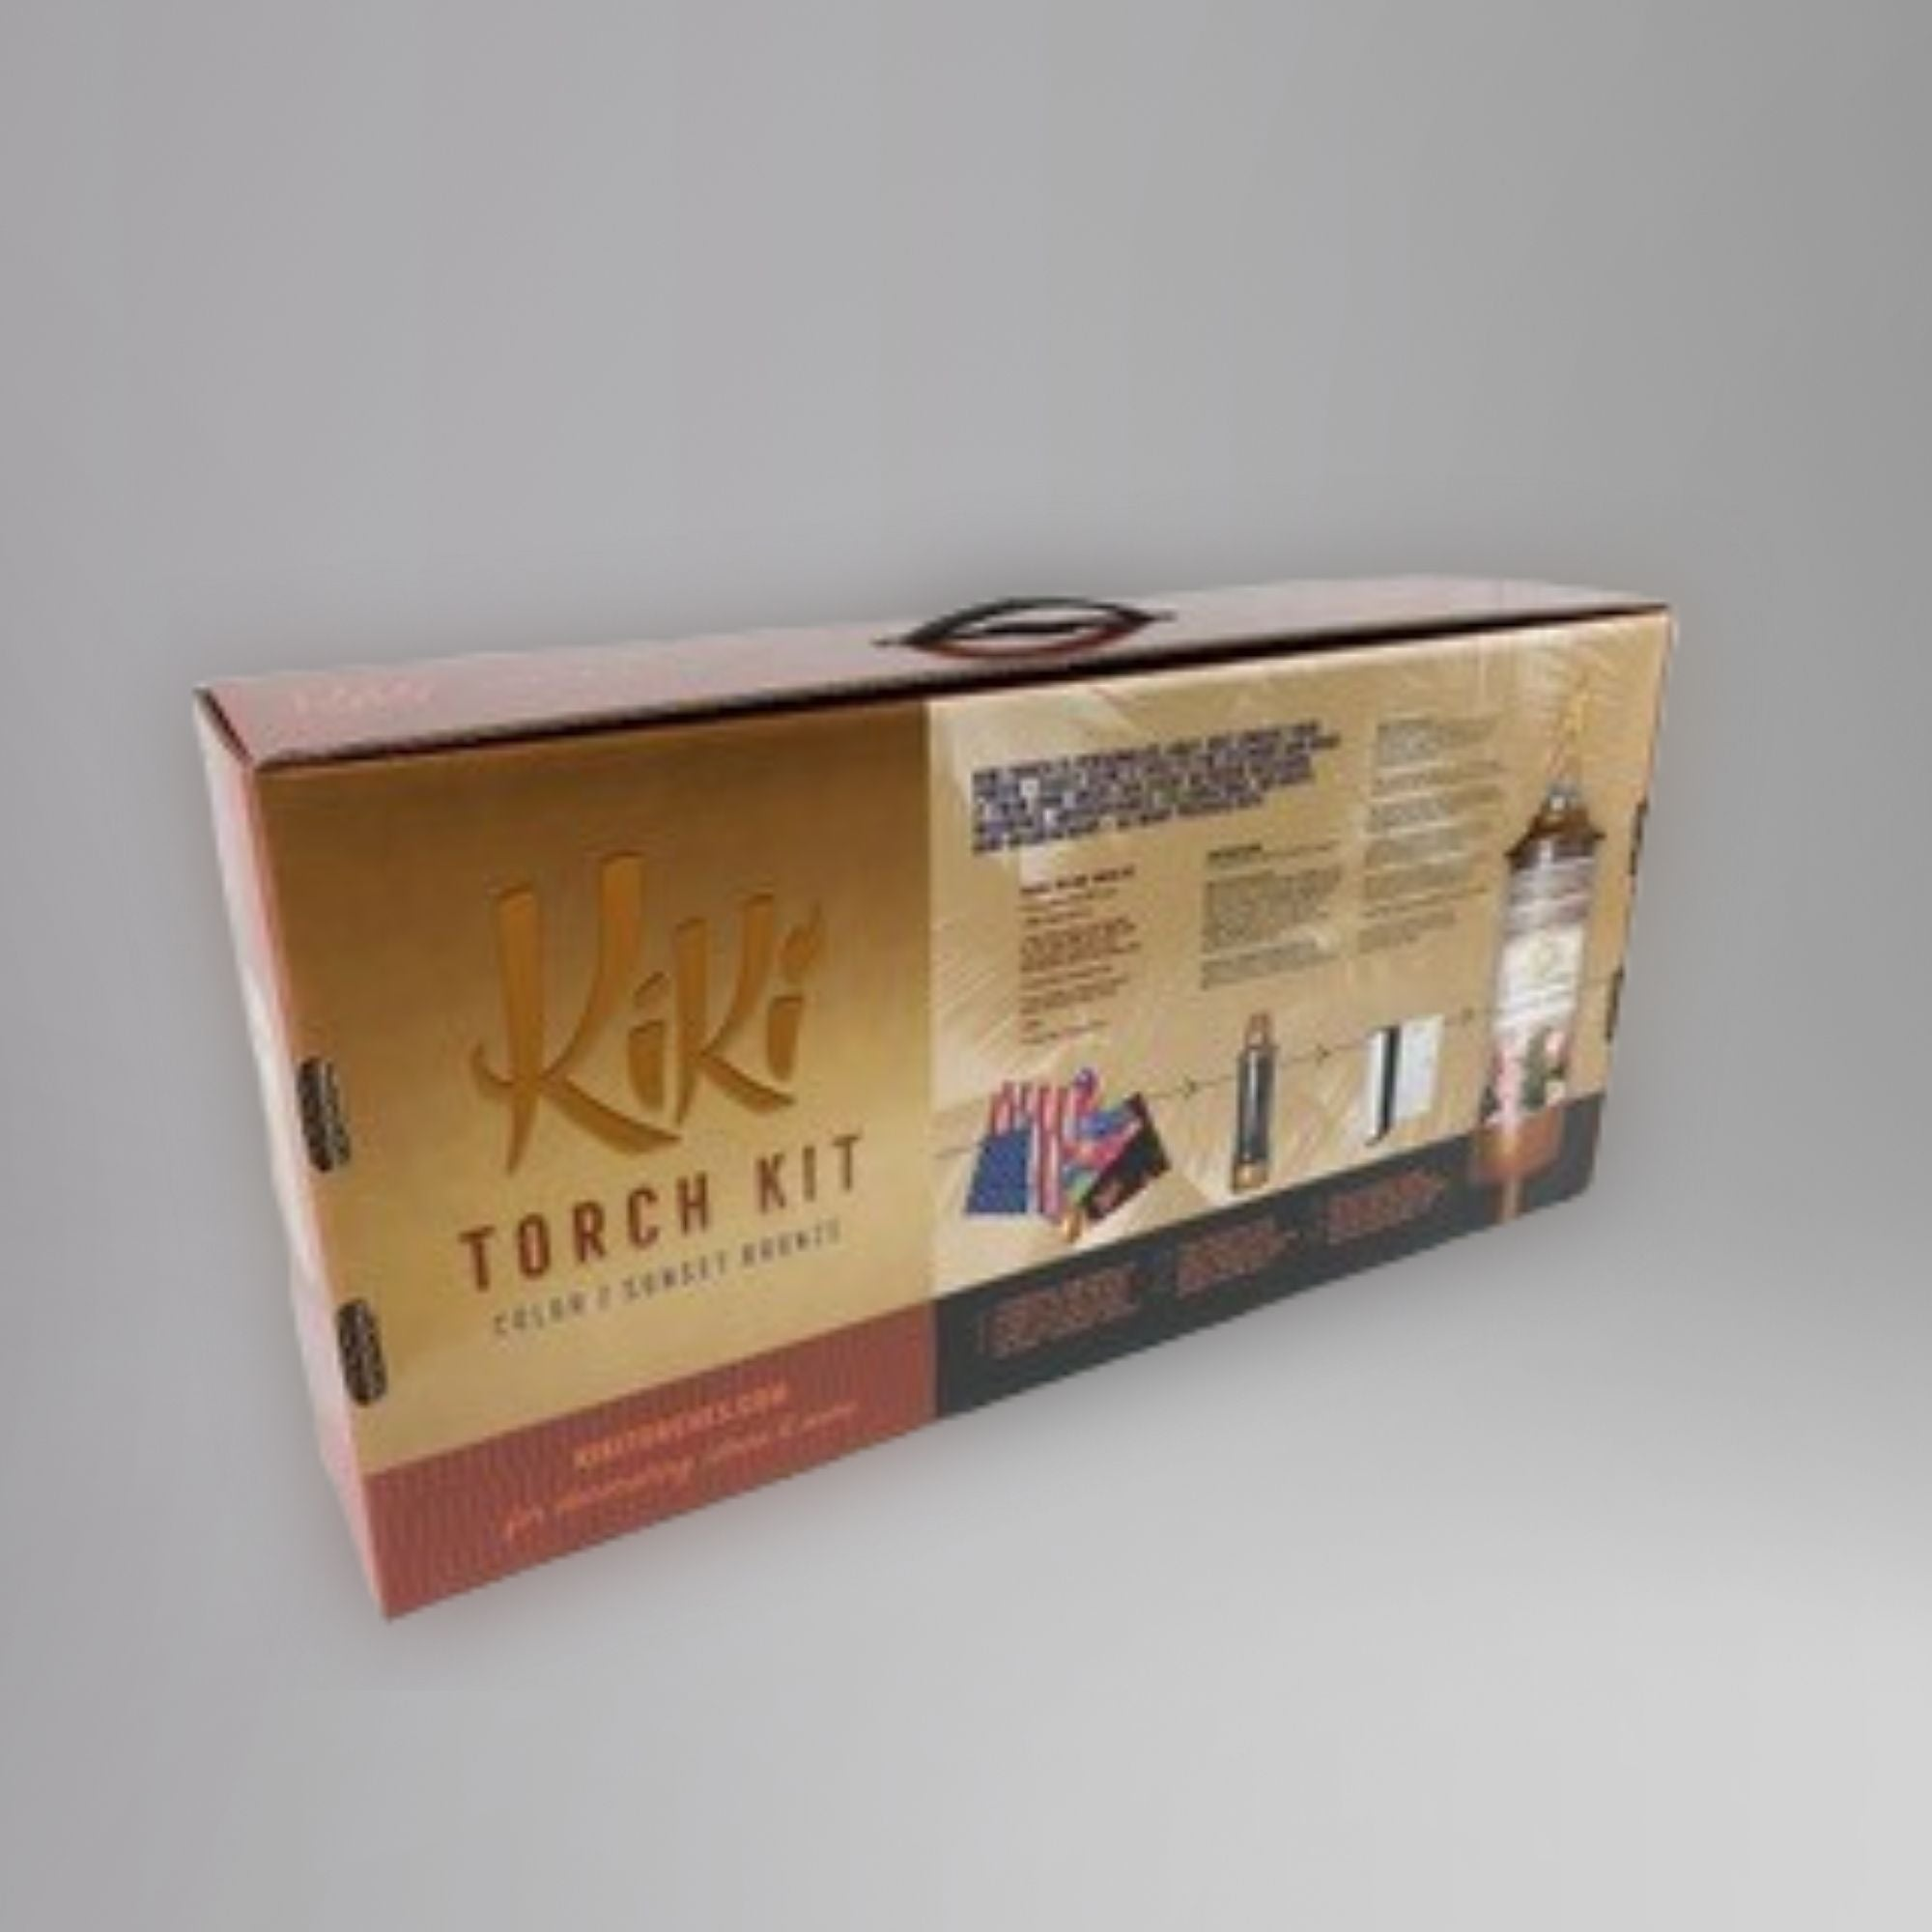 Kiki Torch Kit